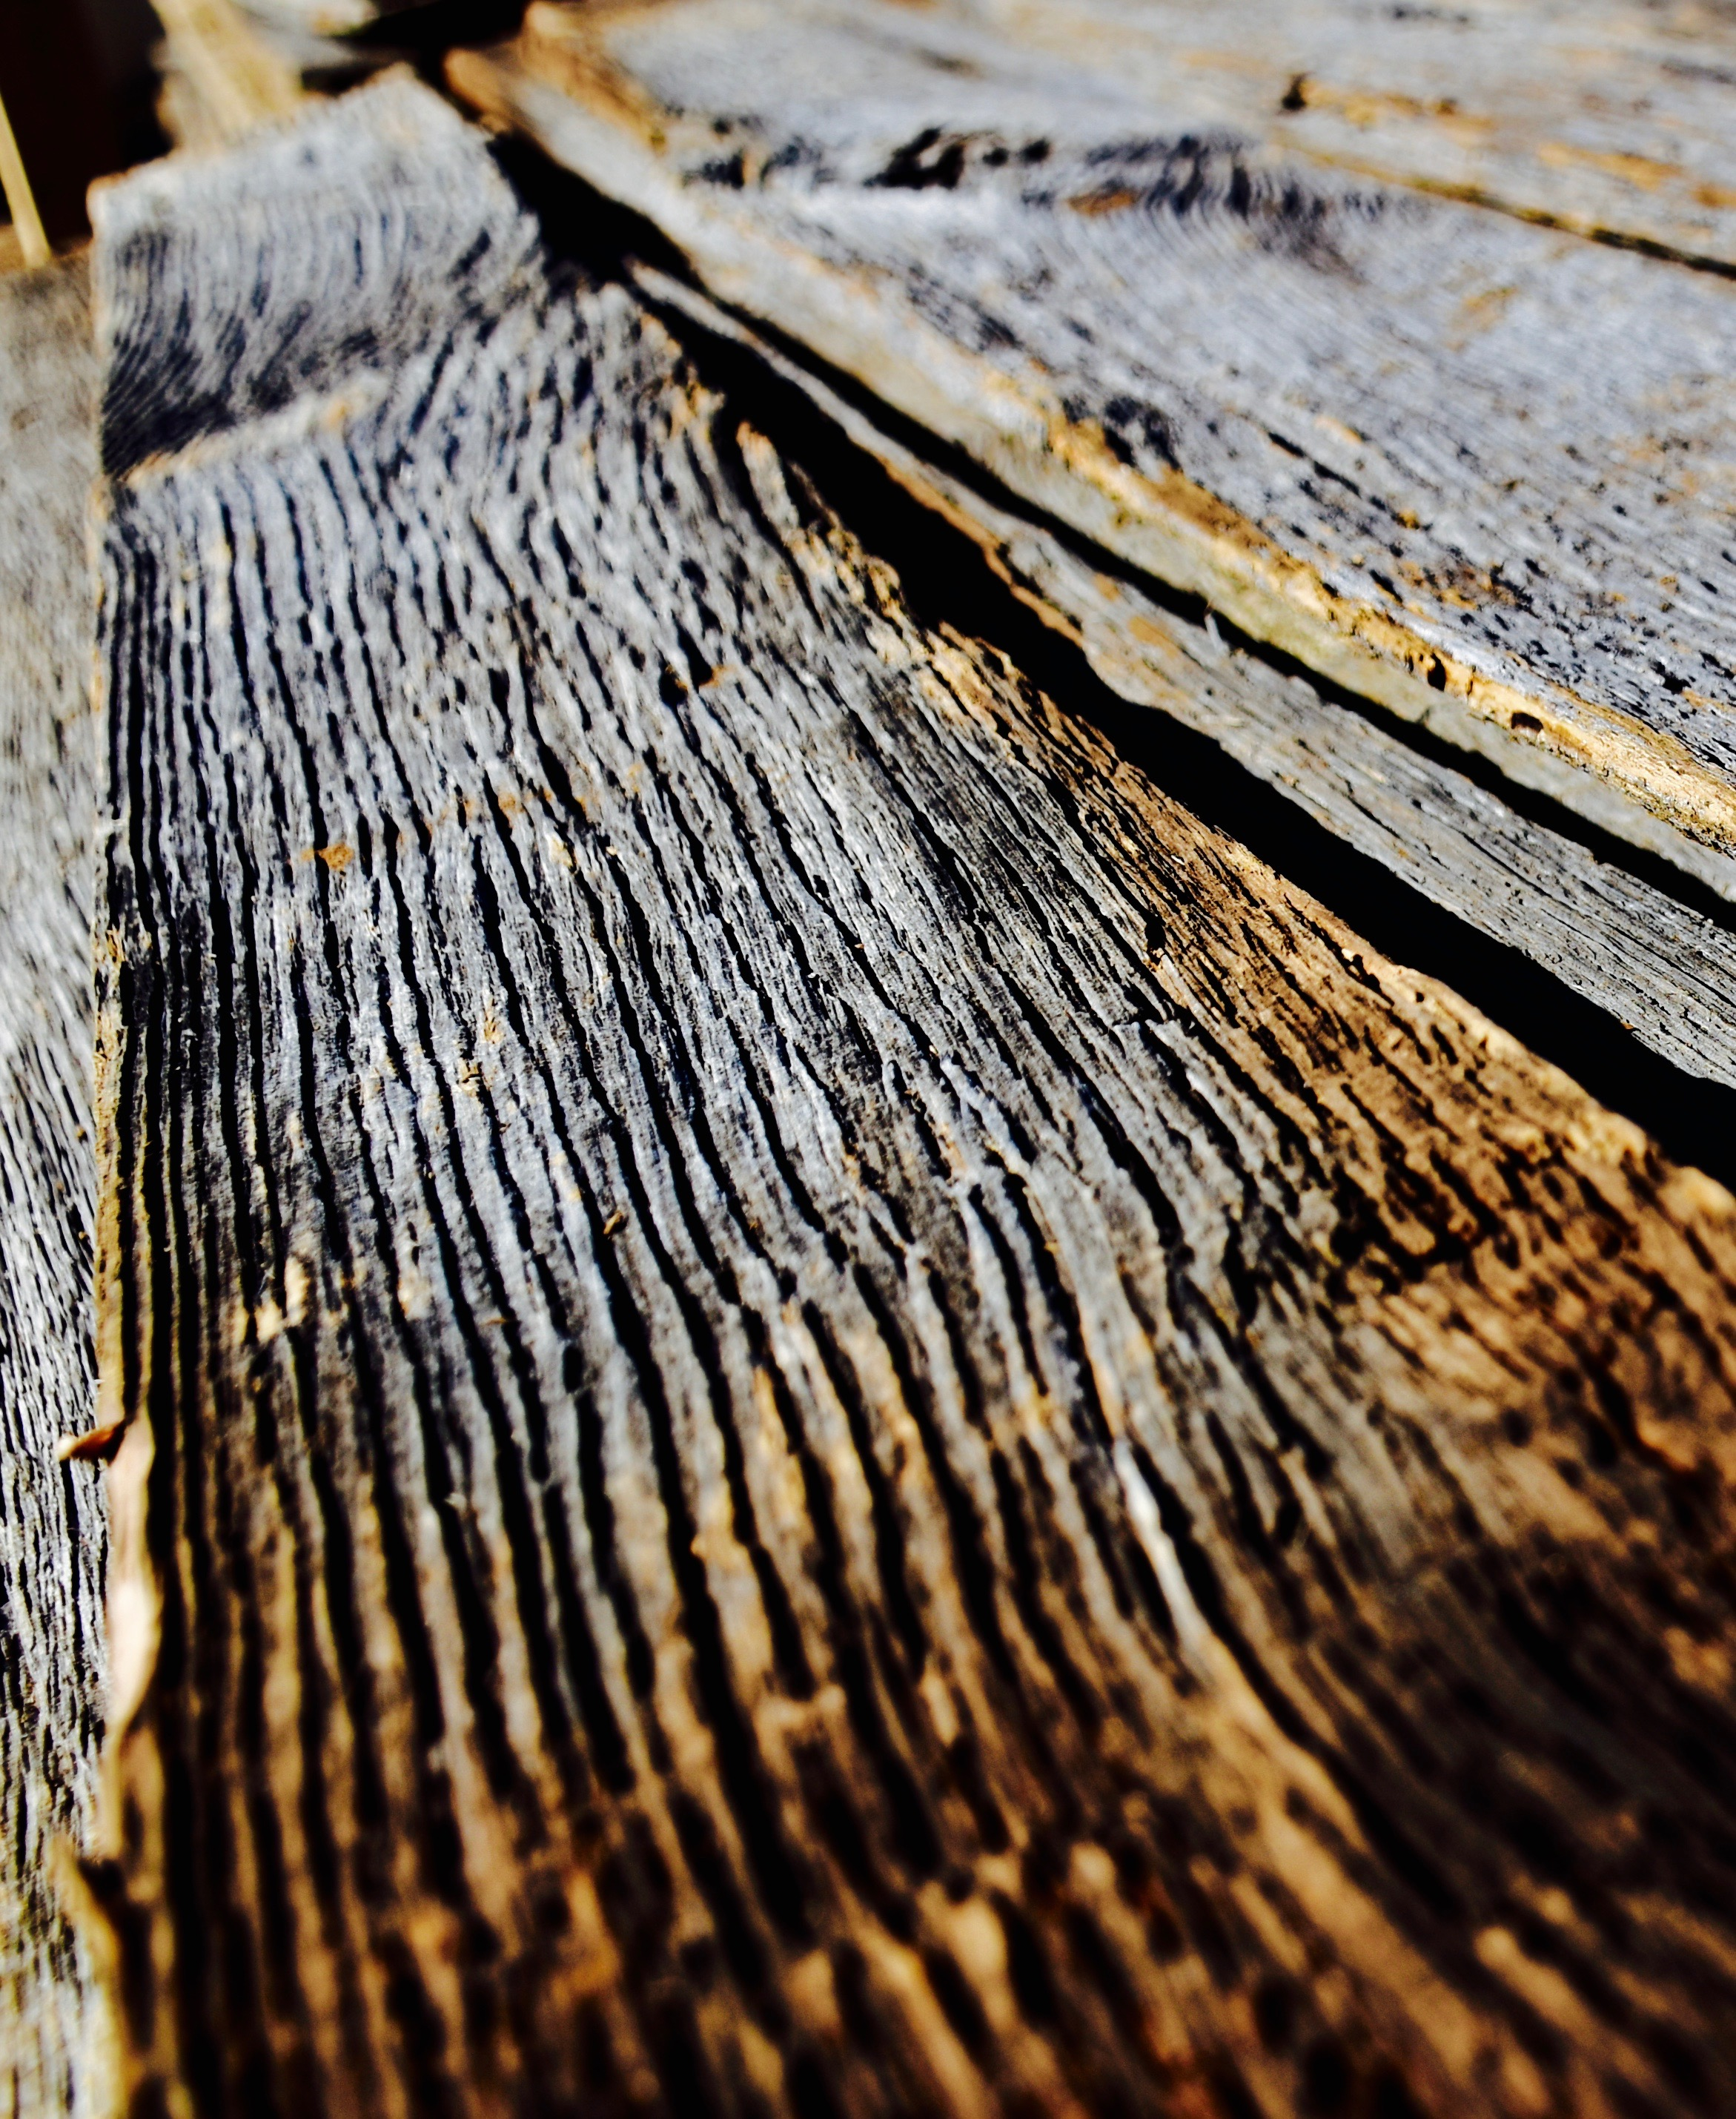 Grey reclaimed barn siding with deep grain that only time and weather can create